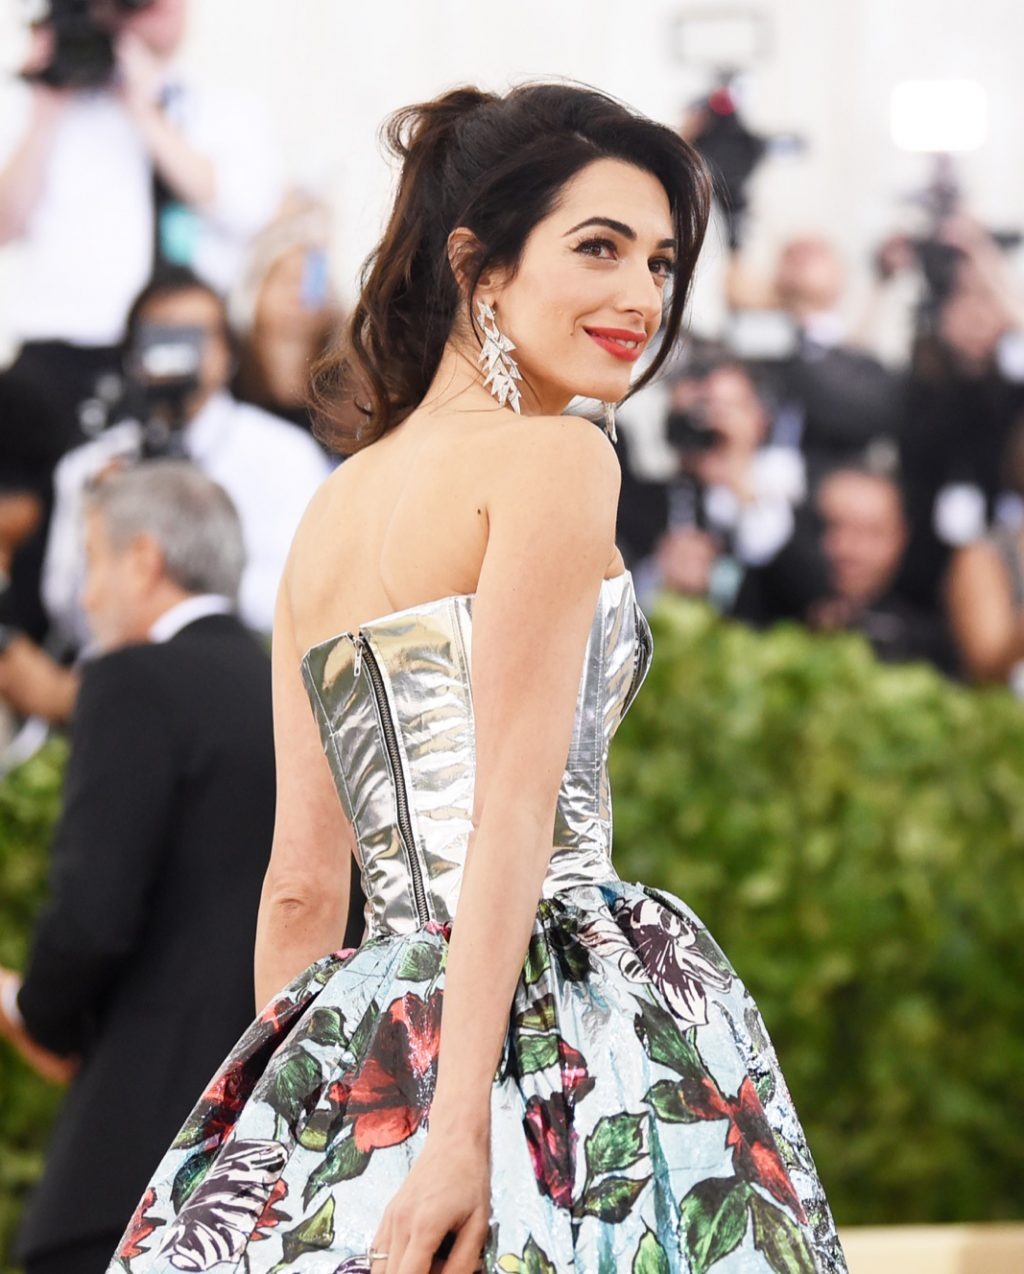 Remember When Amal Clooney Wore This on the Red Carpet?